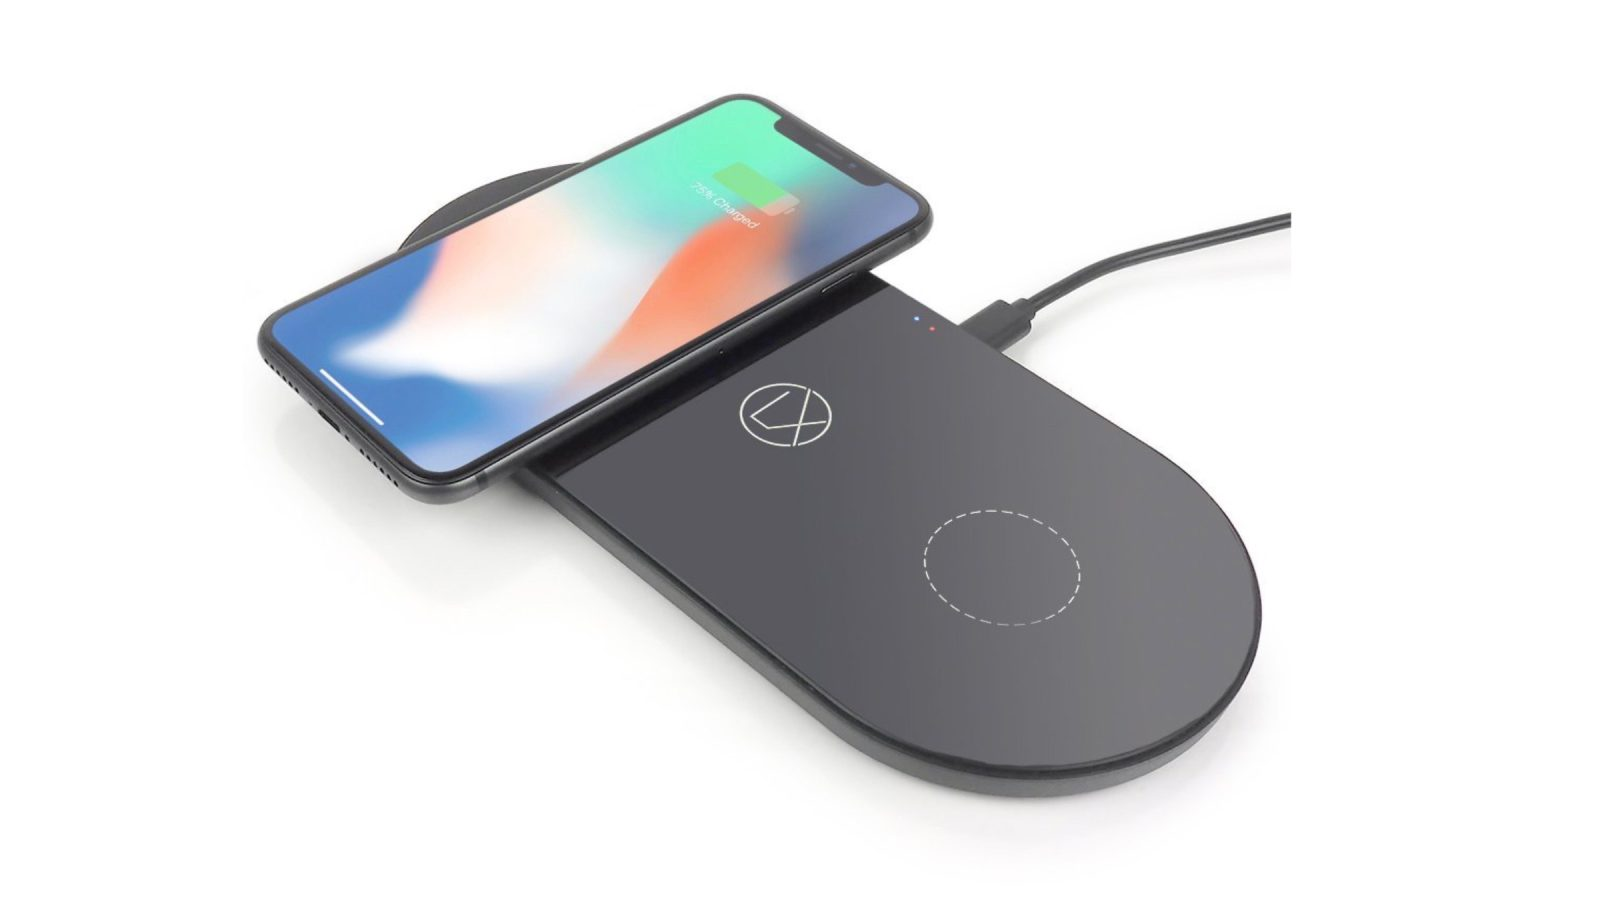 LXORY releases sharp USB-C/Lightning powered Qi dual wireless charger for iPhone lxory-releases-sharp-usb-c-lightning-powered-qi-dual-wireless-charger-for-iphone